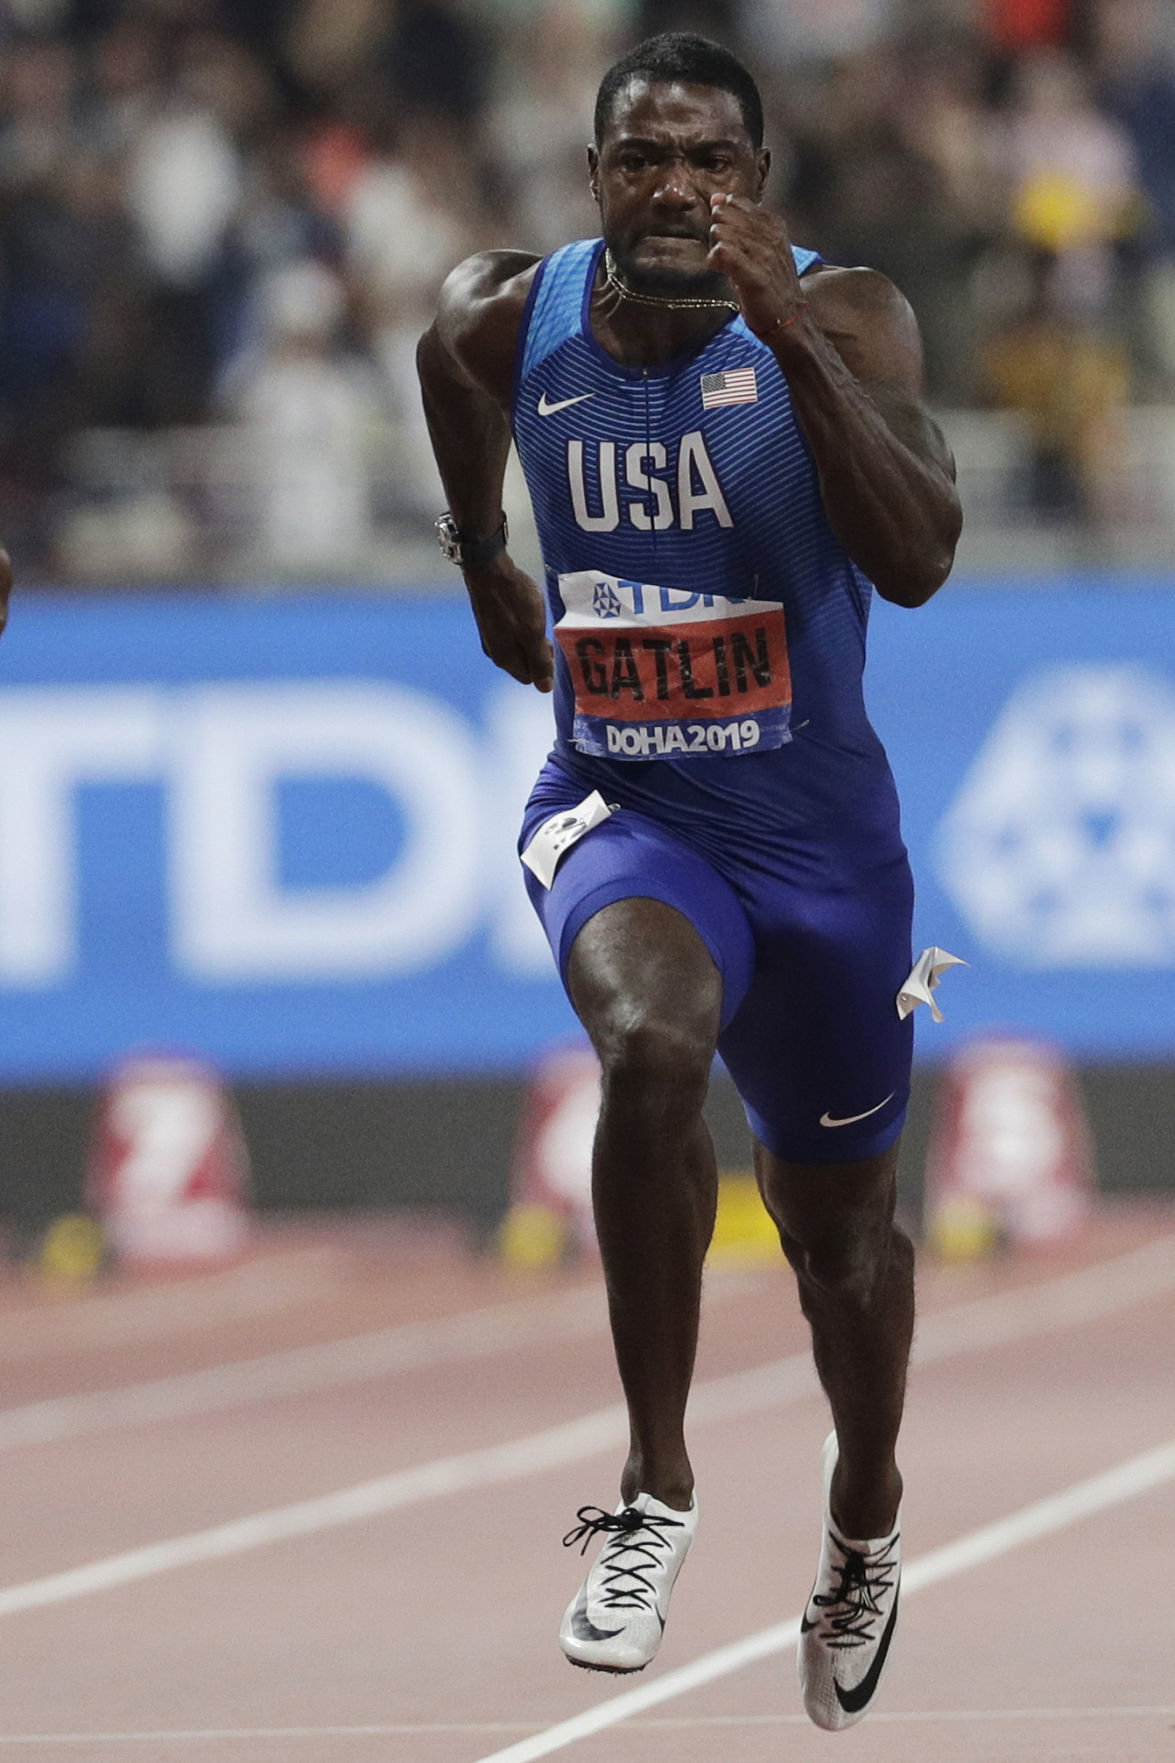 In this Sept. 28, 2019, file photo, Justin Gatlin competes enroute to a silver medal in the 100m dash at the World Athletics Championships in Doha, Qatar. Gatlin will be 39 by the time the games roll around, and Jamaican Asafa Powell is just nine months younger. They are both ancient in this young sprinter's game. They still think they can give the younger generation a run for their money. — AP Photo/Petr David Josek, File